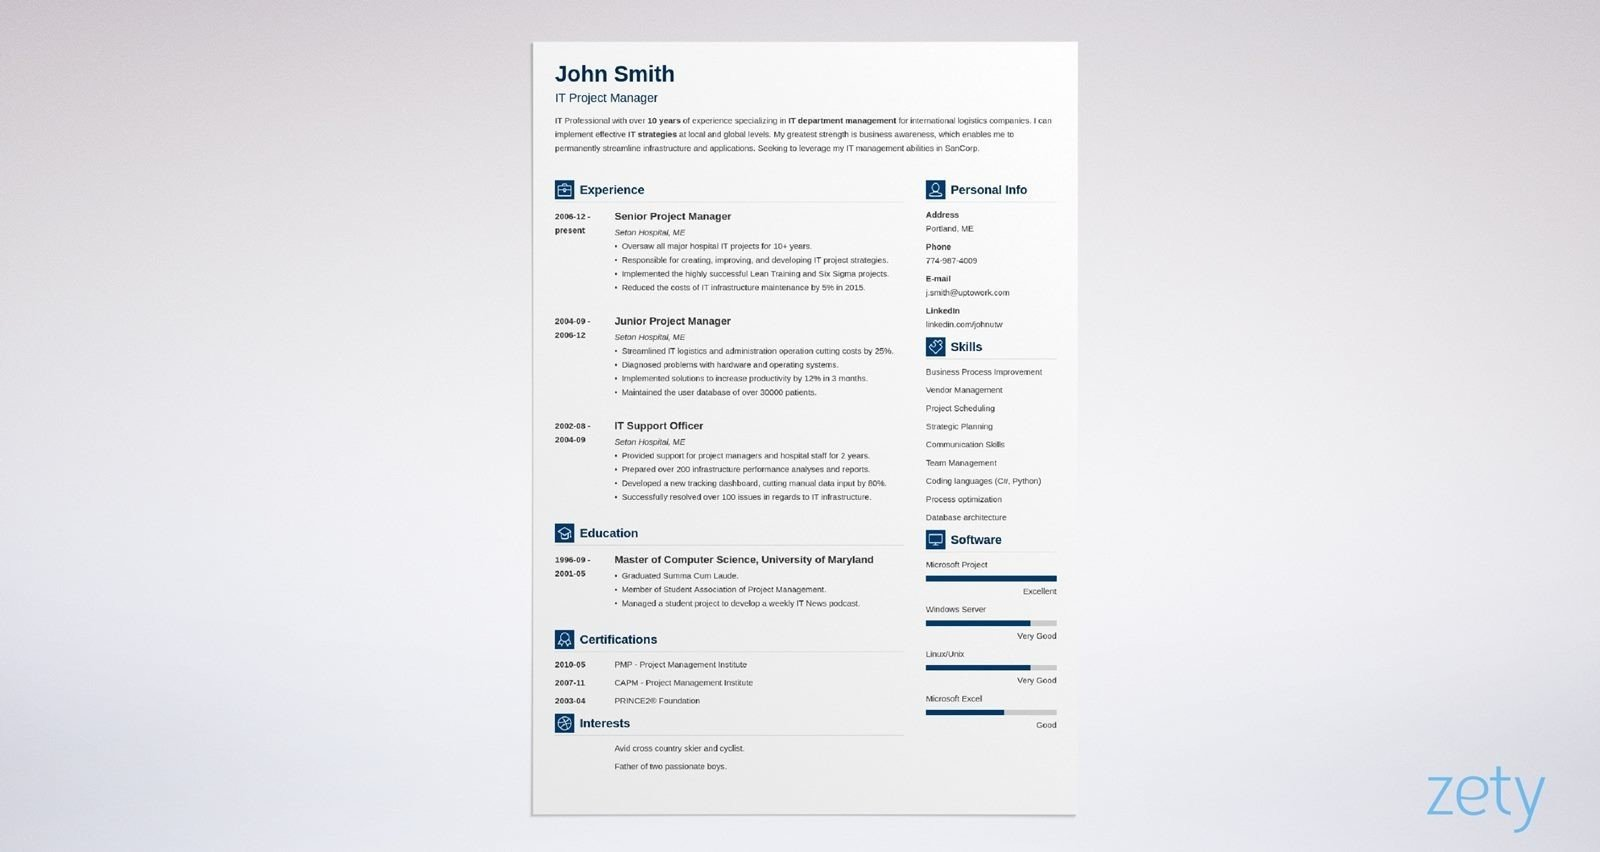 best resume templates for top picks to zety template vibes follow up with recruiter after Resume Zety Resume Template Download